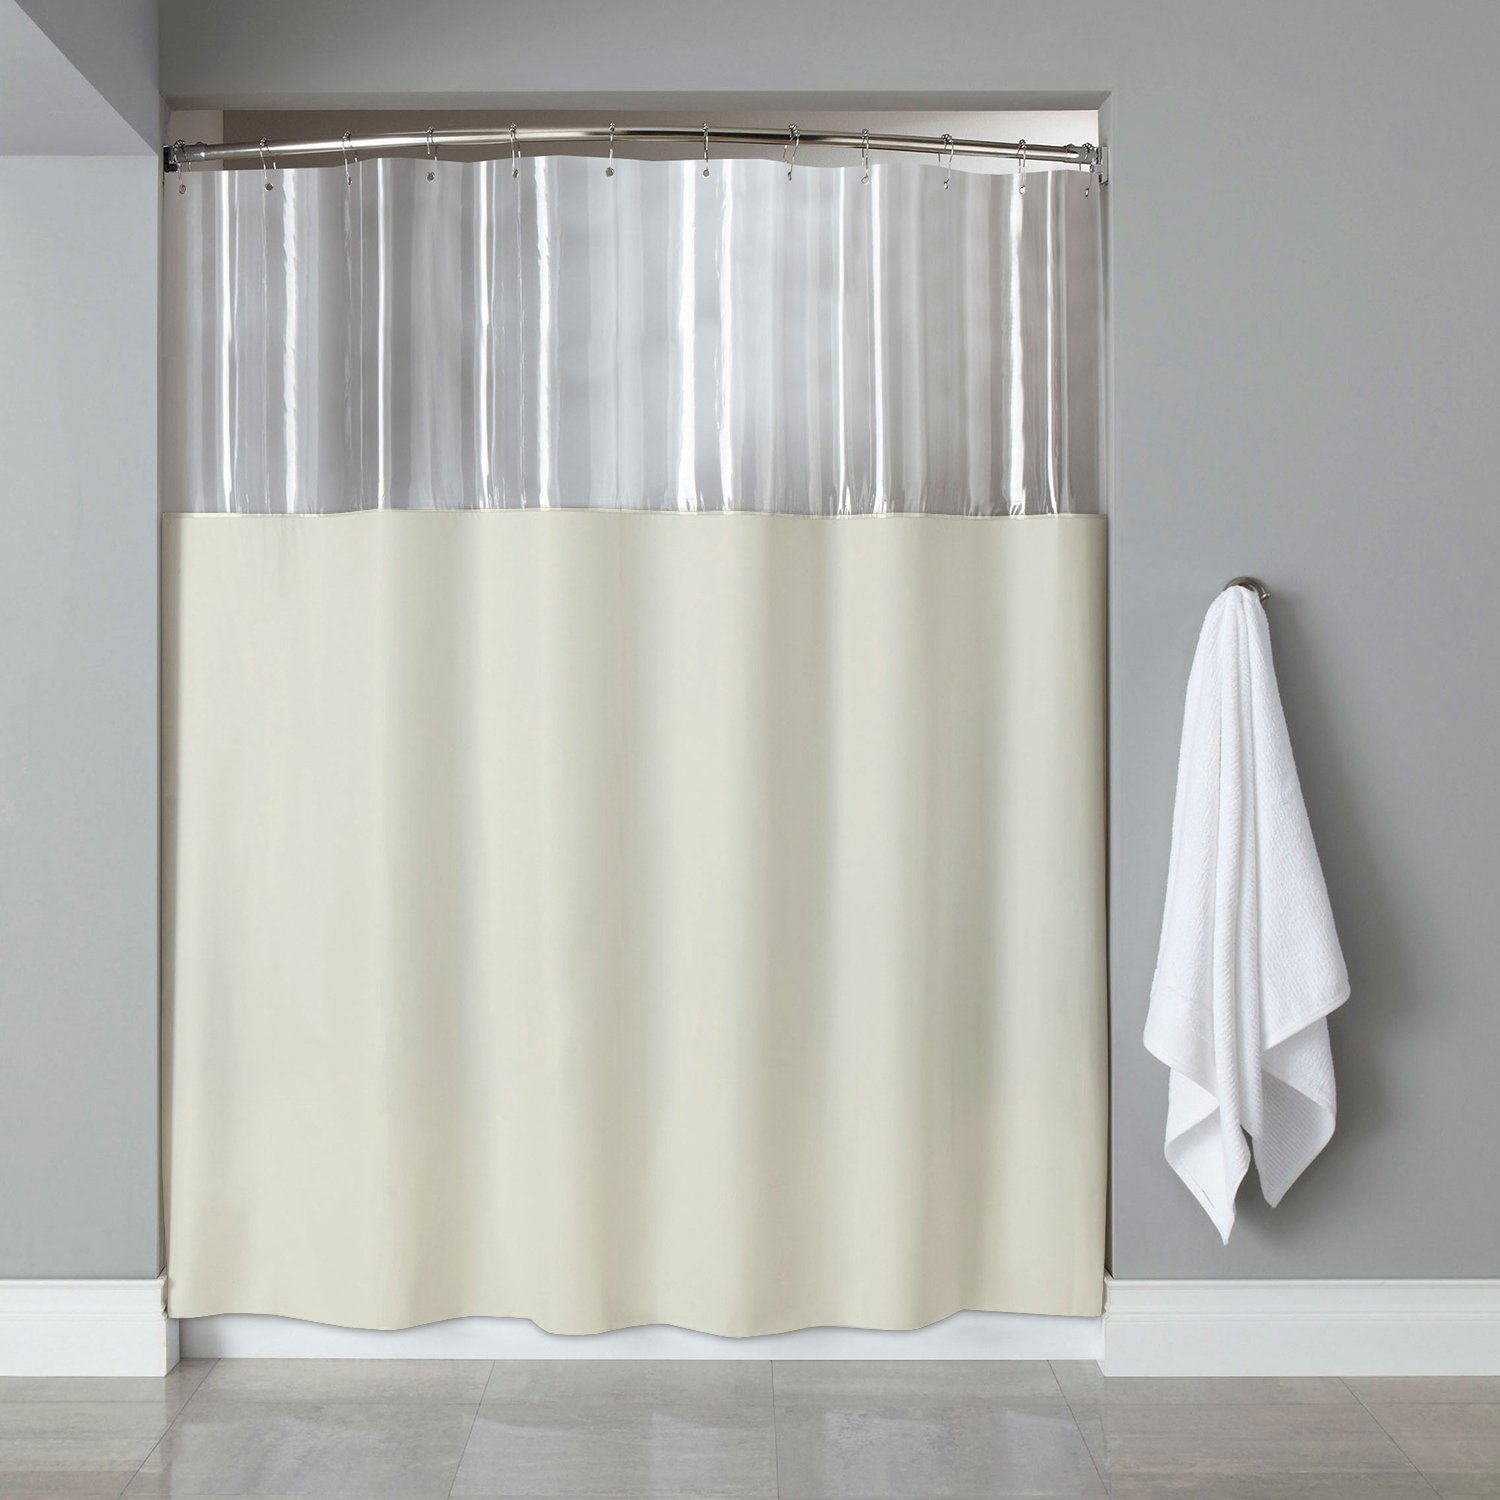 Sweet Home Collection Extra Long 84 X 72 Shower Curtain With Clear See Through Top Antibacterial Antimicrobial Treated Mildew And Water Resistant